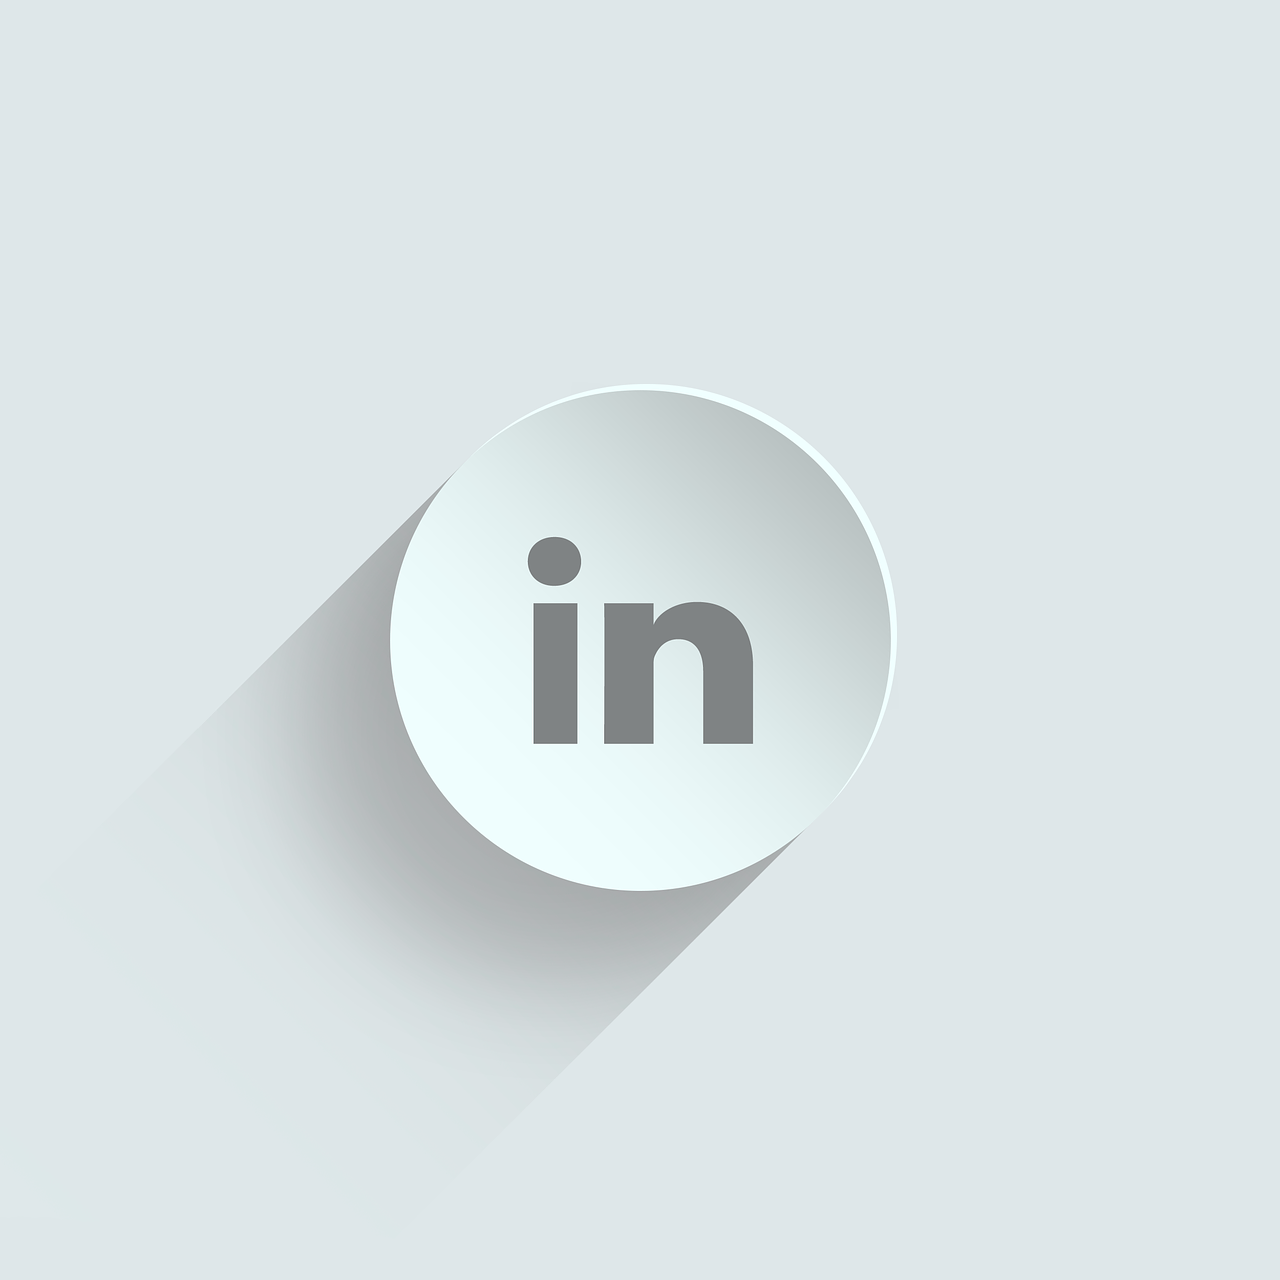 Enhancing LinkedIn to Support your Resume and Job Search